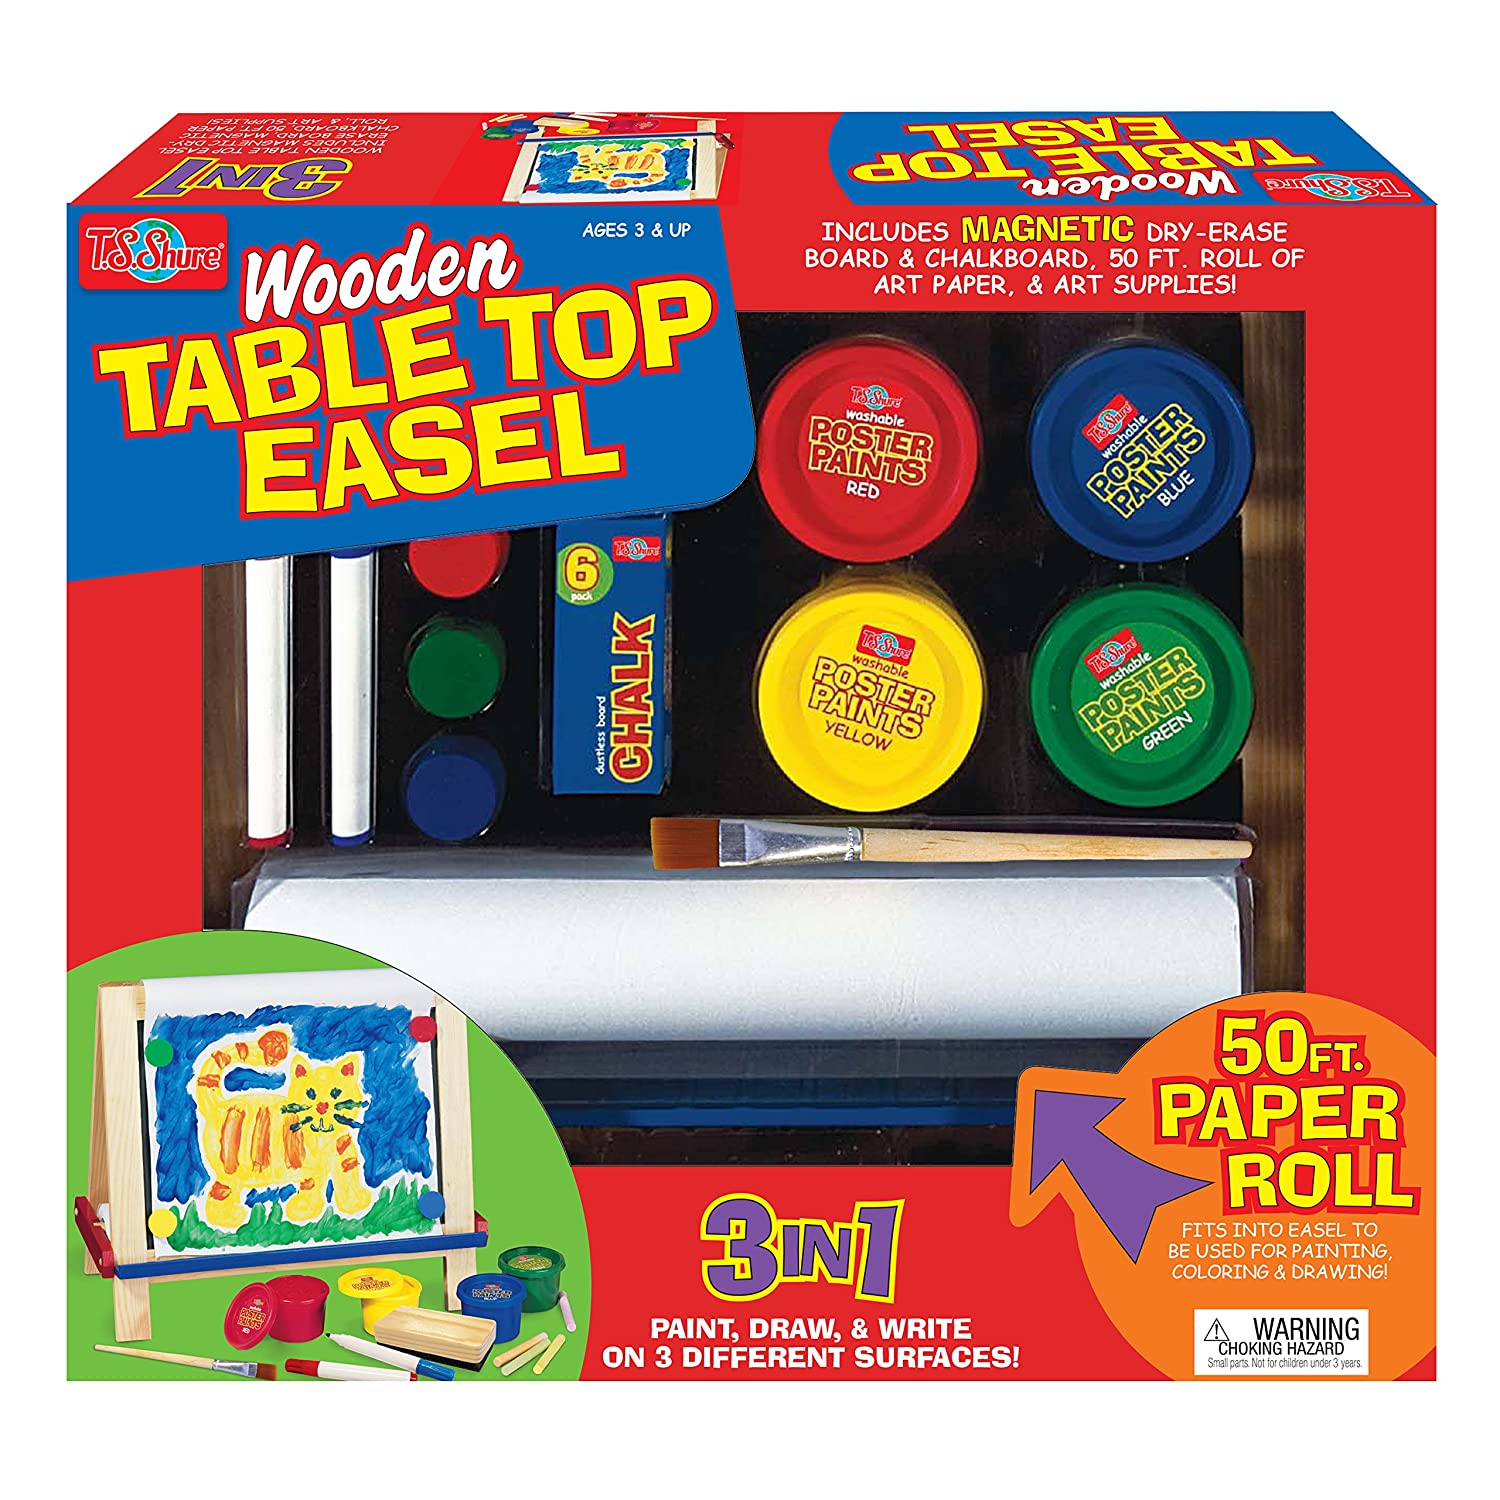 Amazon.com: T.S. Shure Wooden Table Top Easel Playset: Toys & Games